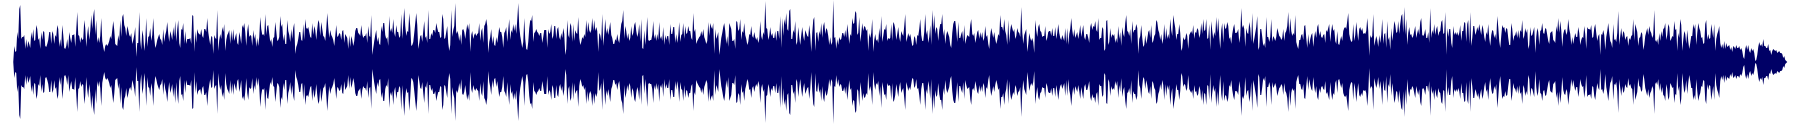 waveform of track #80190